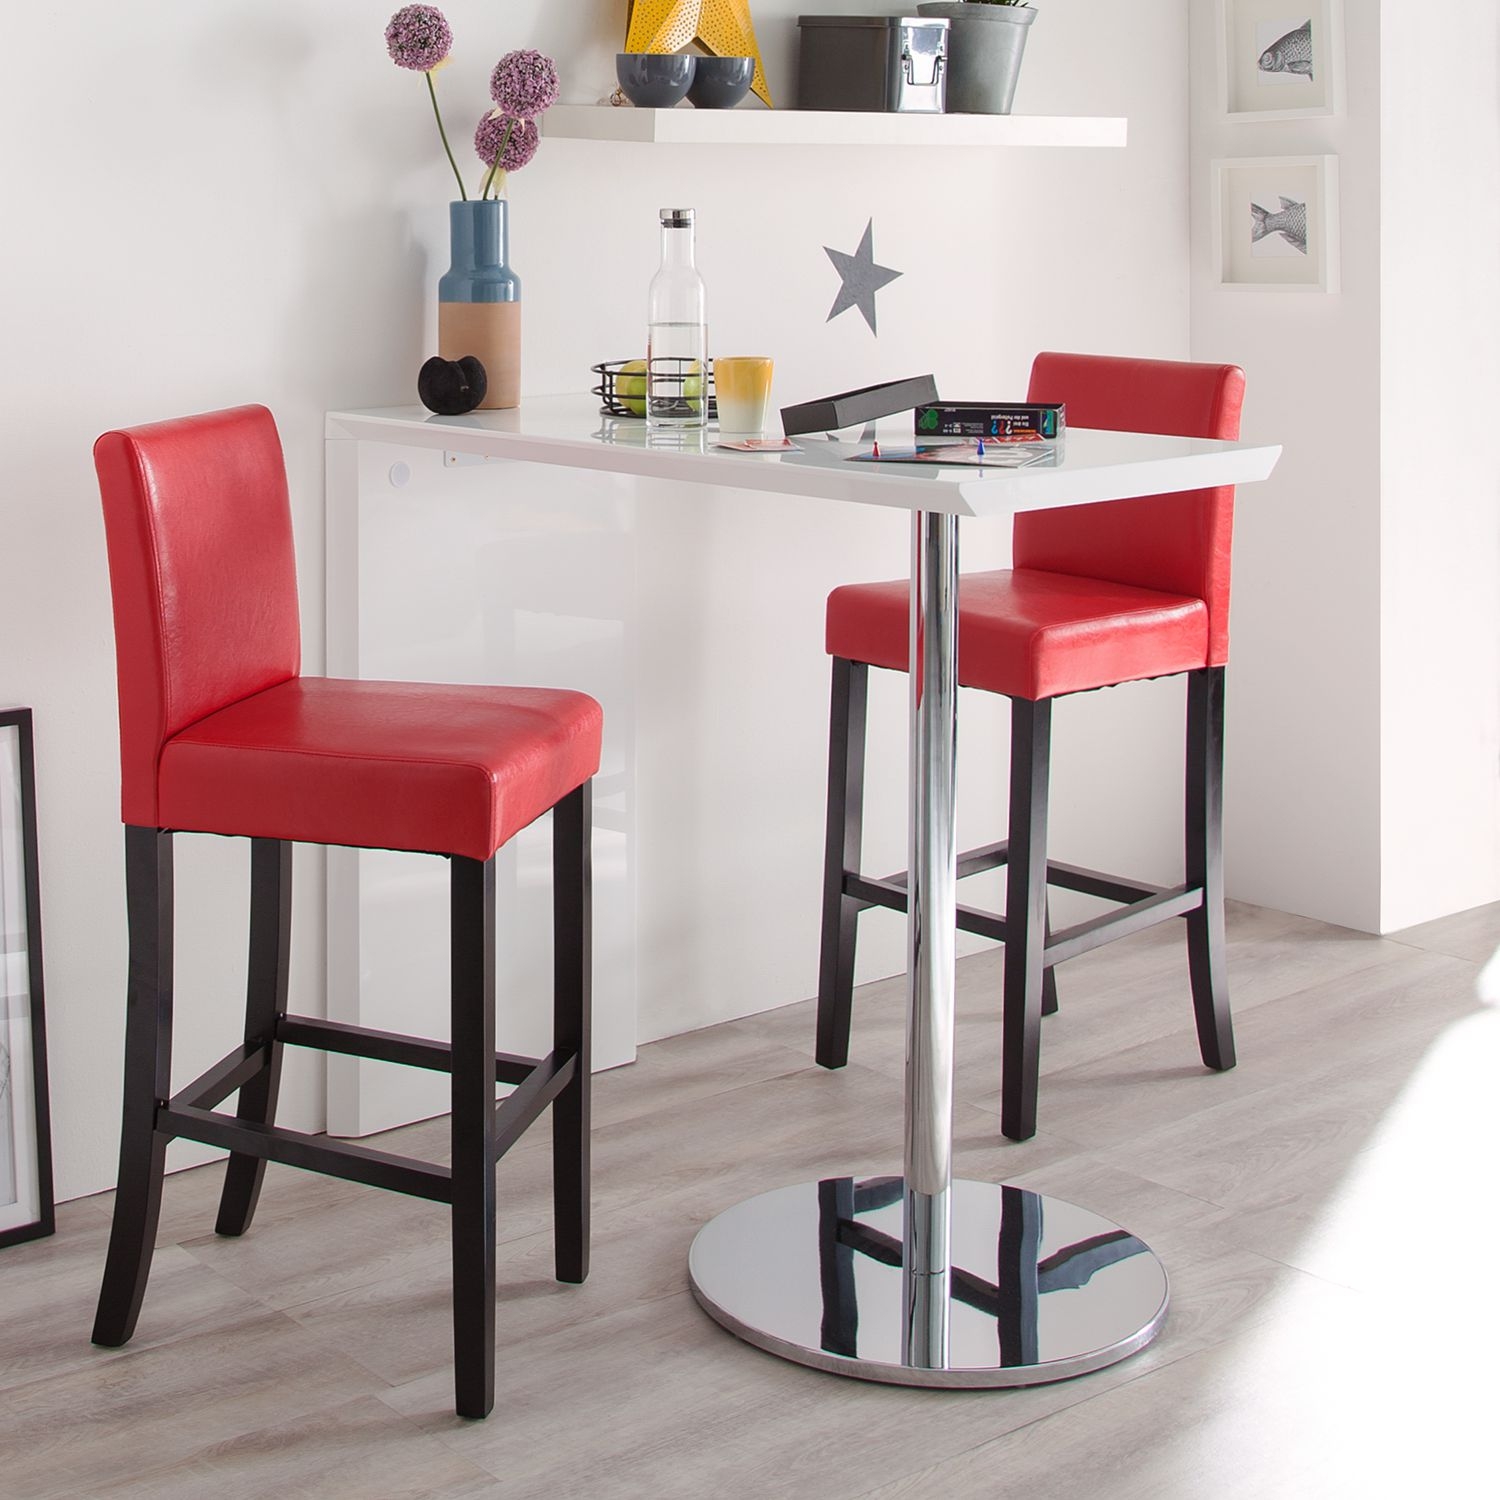 bartisch pierre hochglanz wei stehtisch bistrotisch bar tisch ebay. Black Bedroom Furniture Sets. Home Design Ideas